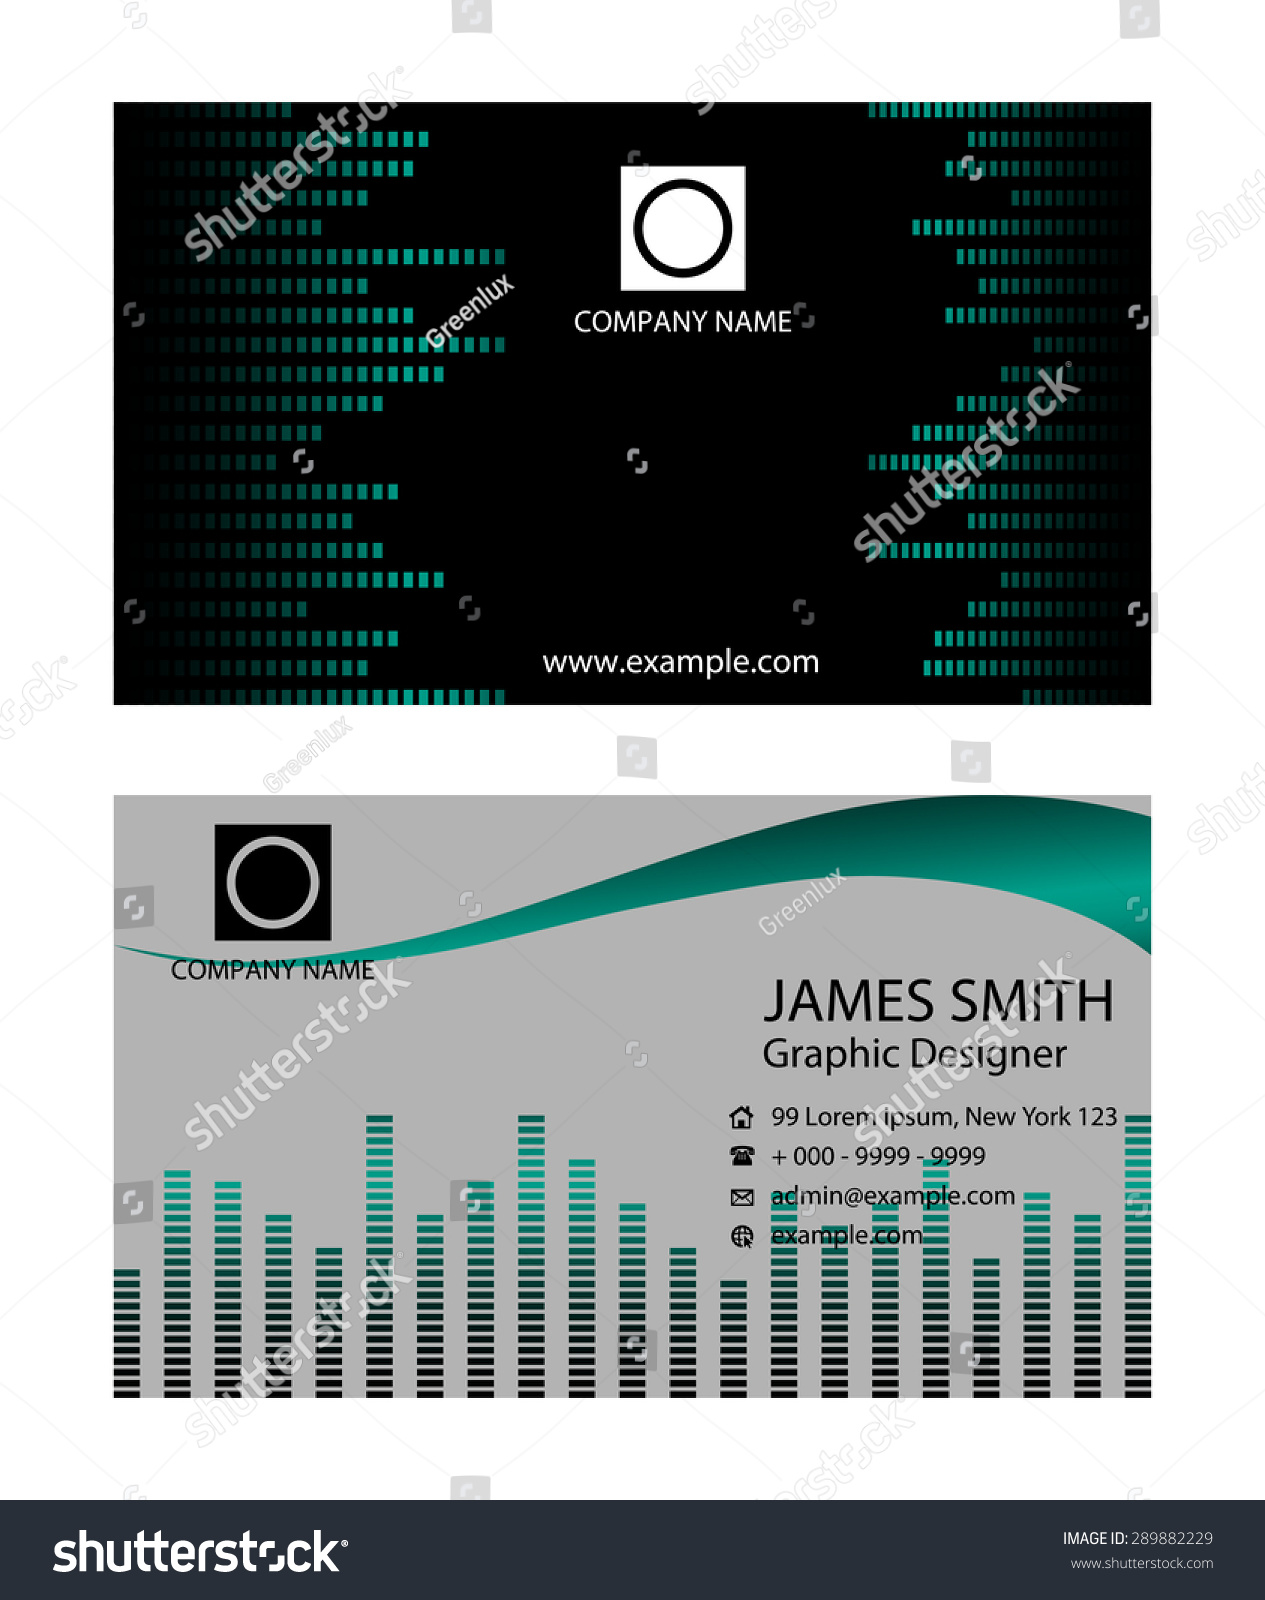 Musician business card examples gallery free business cards business card music background stock vector 289882229 shutterstock business card with music background magicingreecefo gallery magicingreecefo Image collections